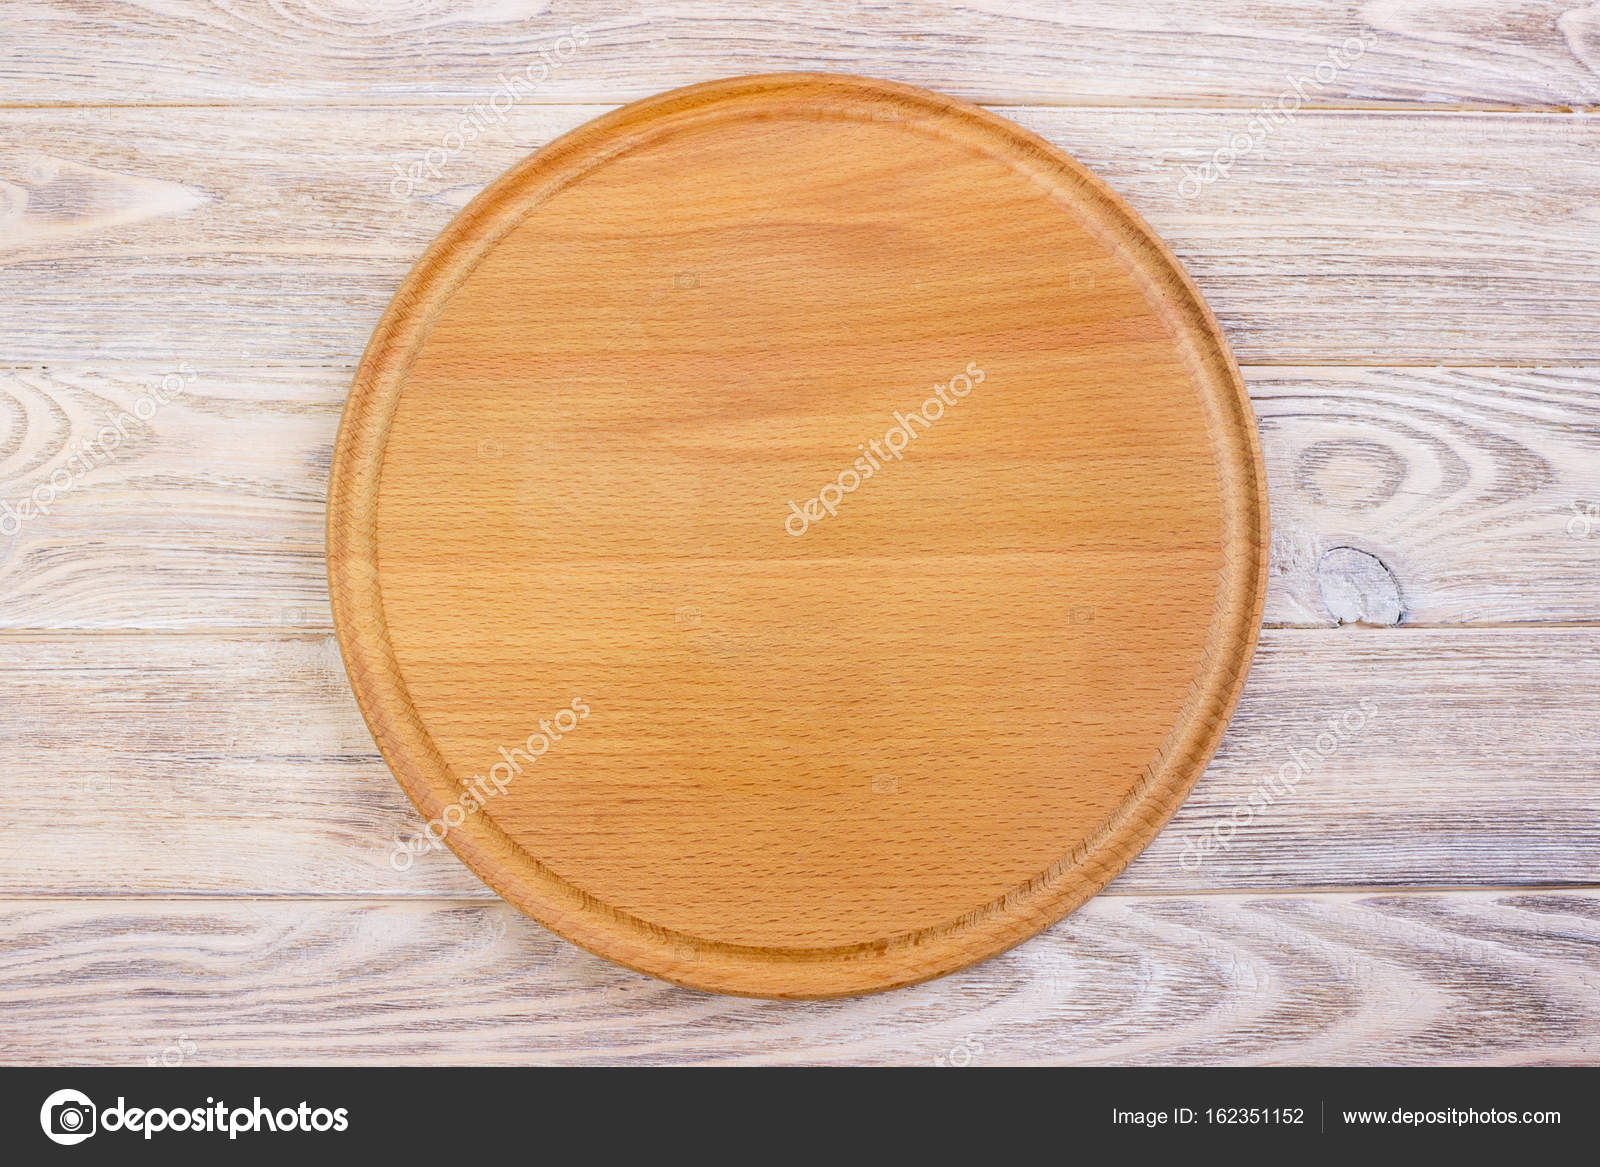 Empty Round Cutting Board On A Wooden Table Top View Stock Photo C Snegok1967 162351152